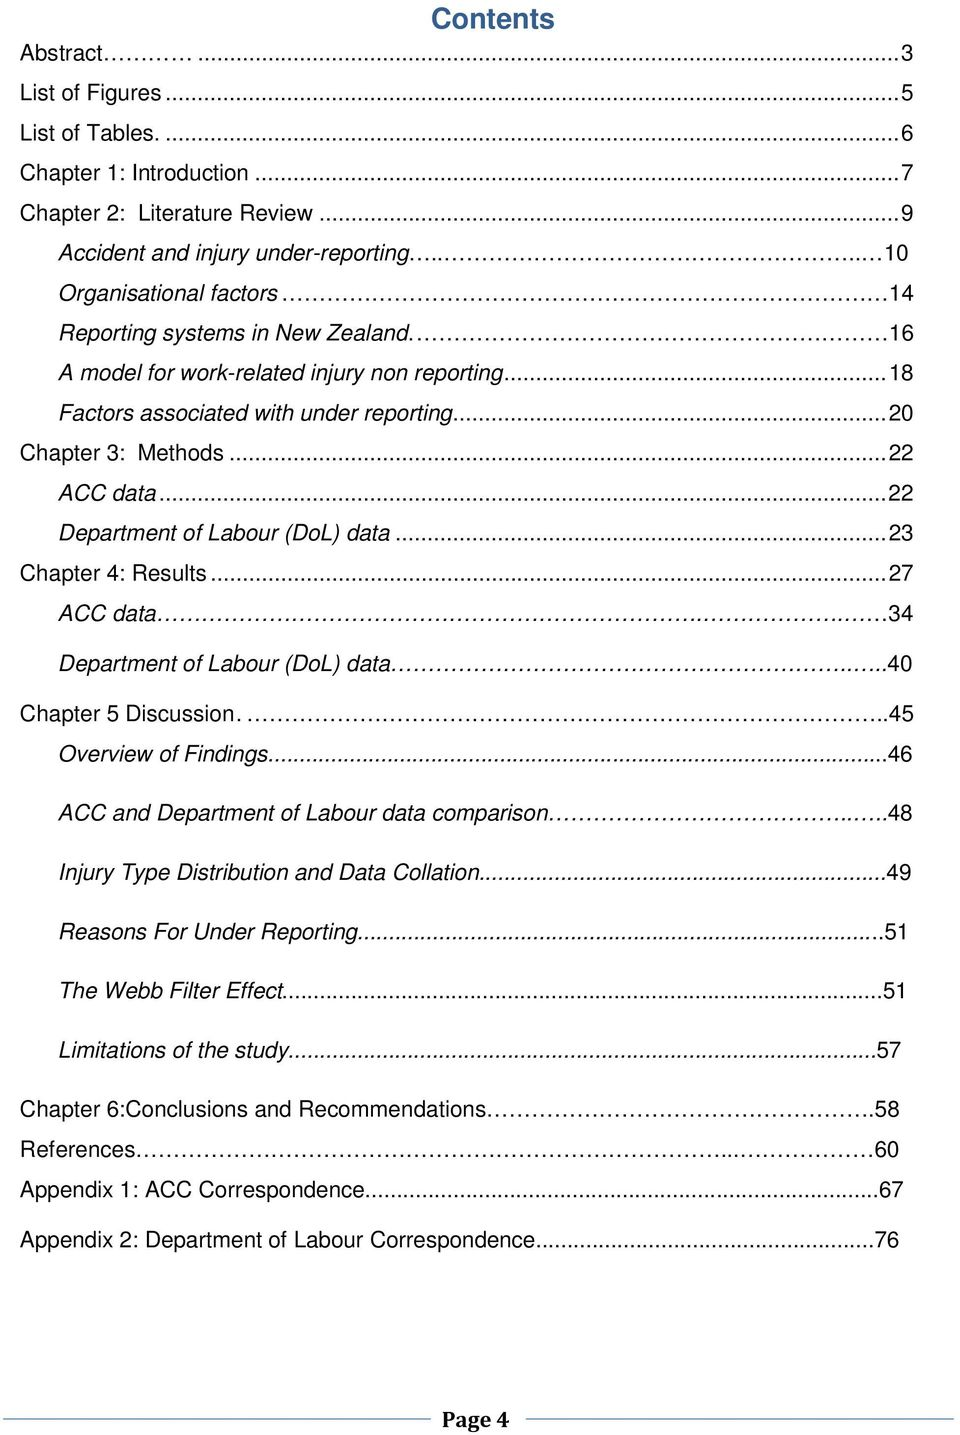 .. 22 Department of Labour (DoL) data... 23 Chapter 4: Results... 27 ACC data.. 34 Department of Labour (DoL) data....40 Chapter 5 Discussion...45 Overview of Findings.